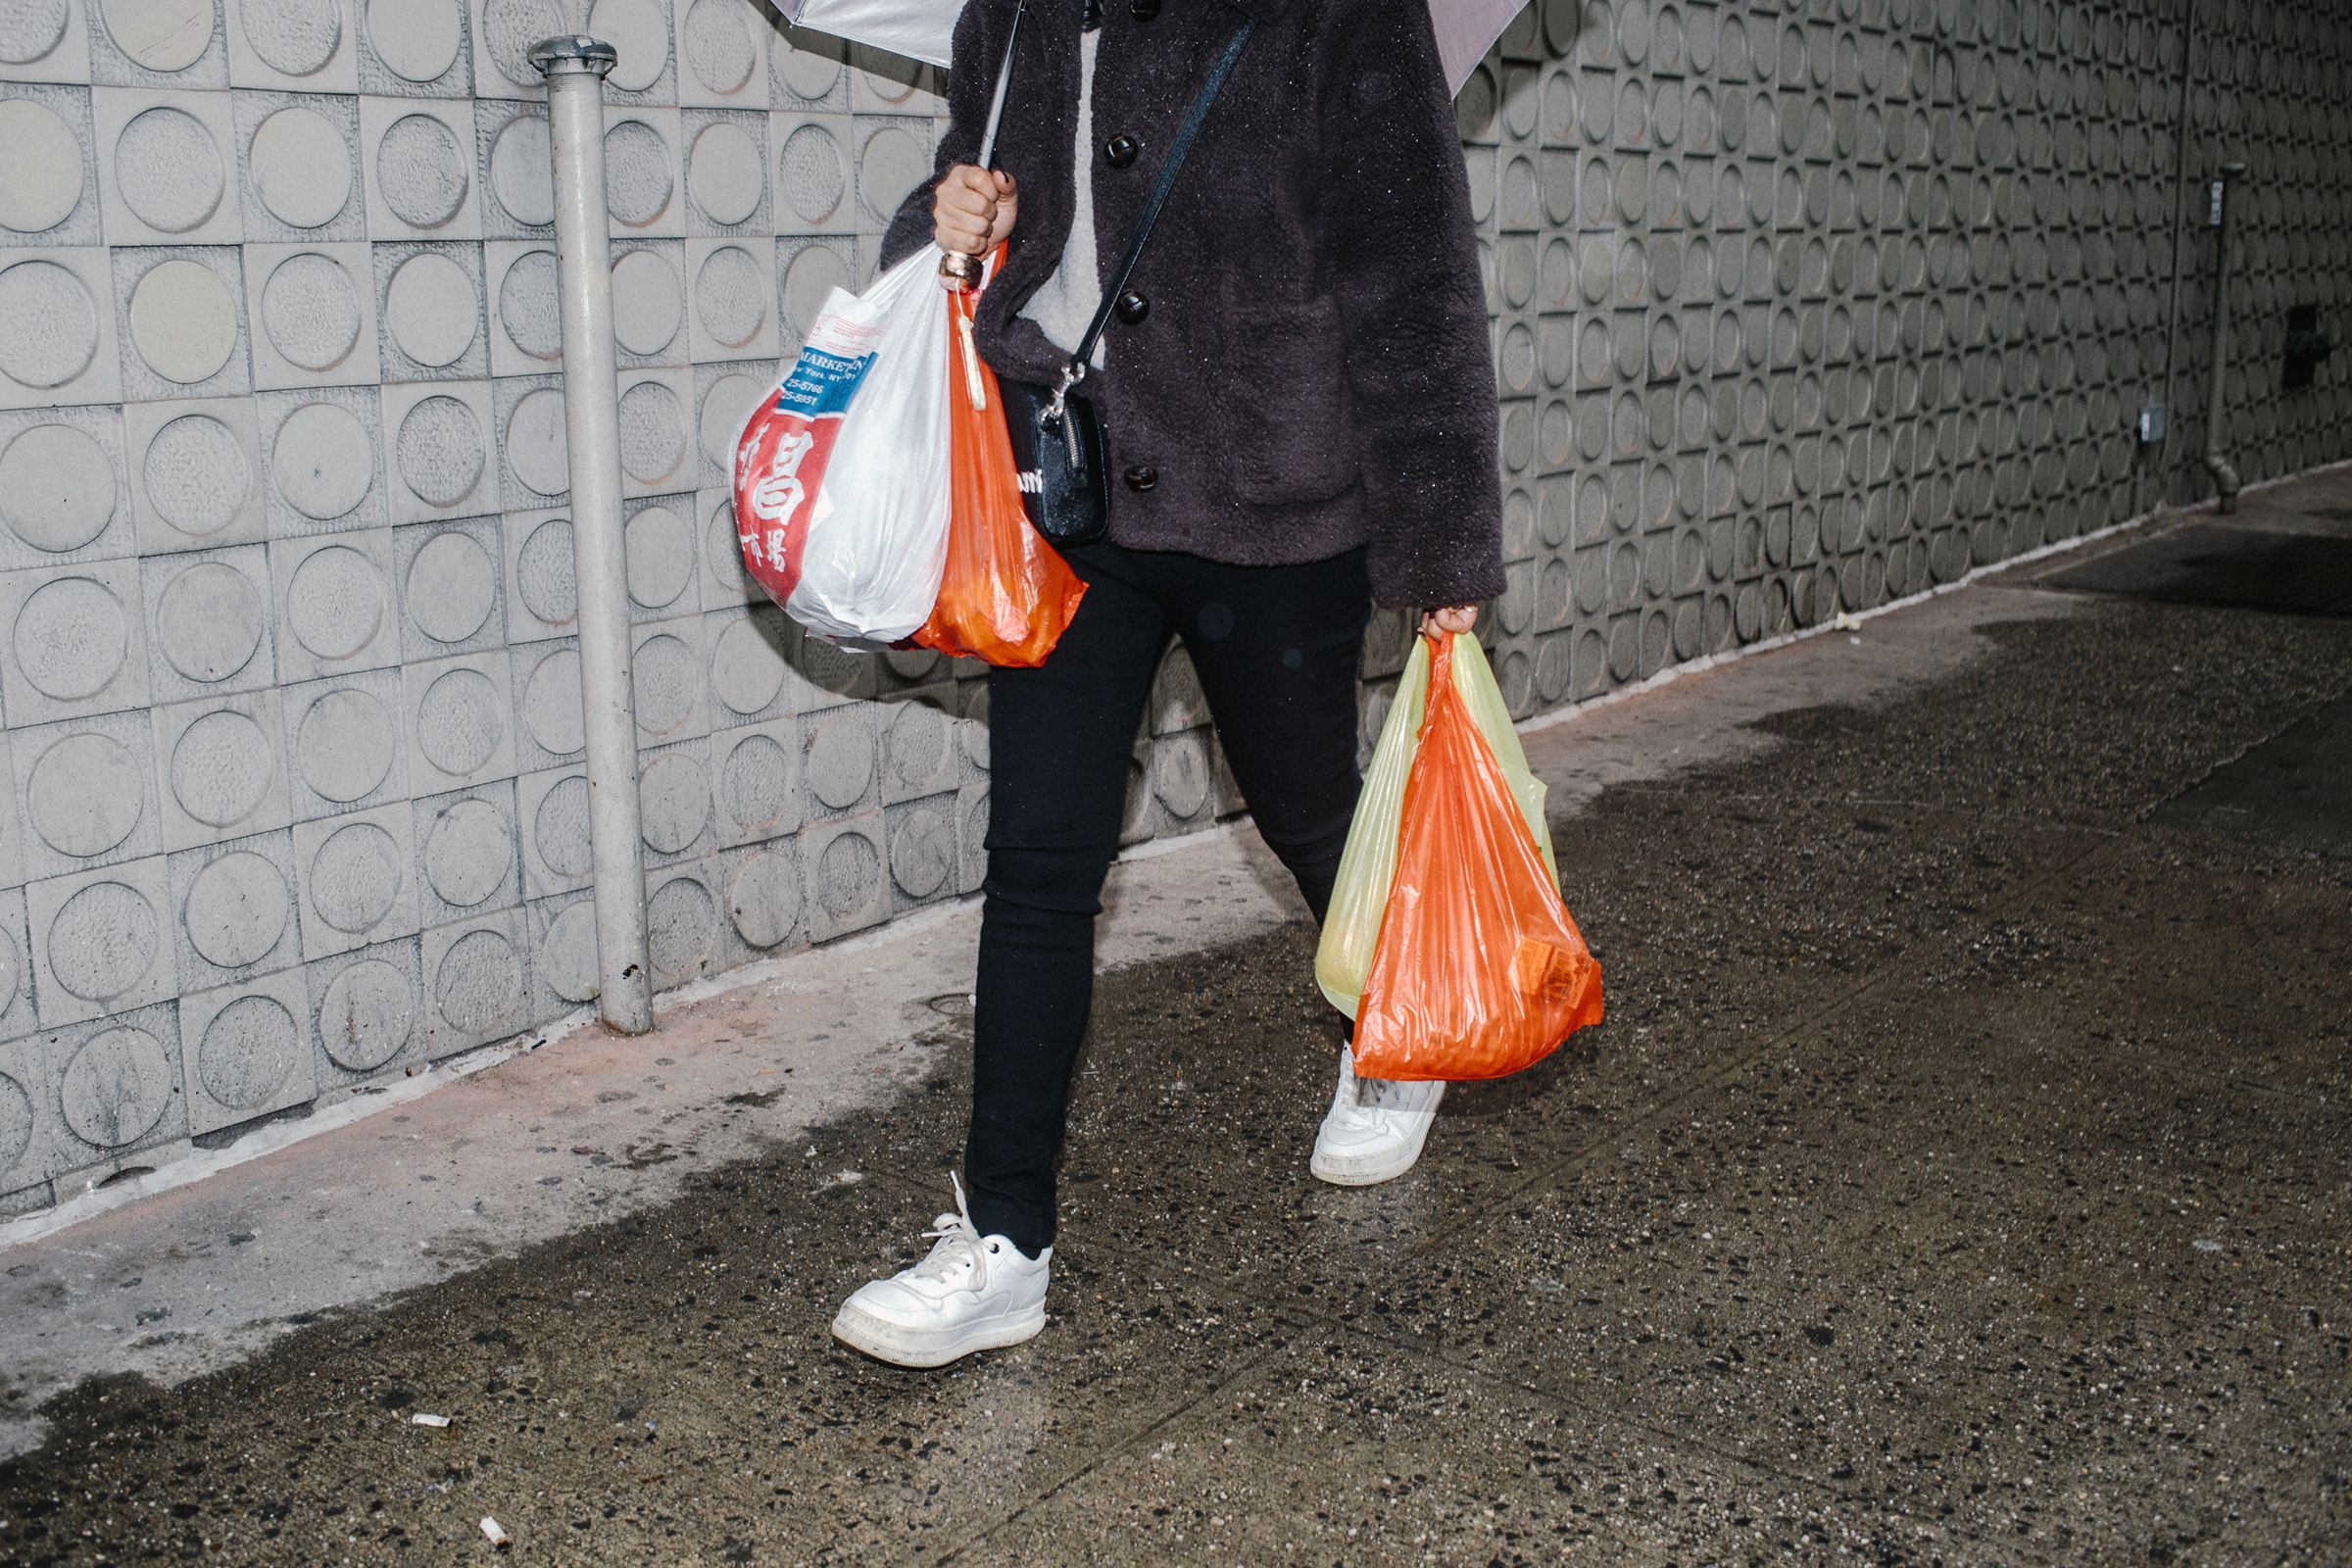 A woman carries plastic bags in New York on Feb. 25, 2020.